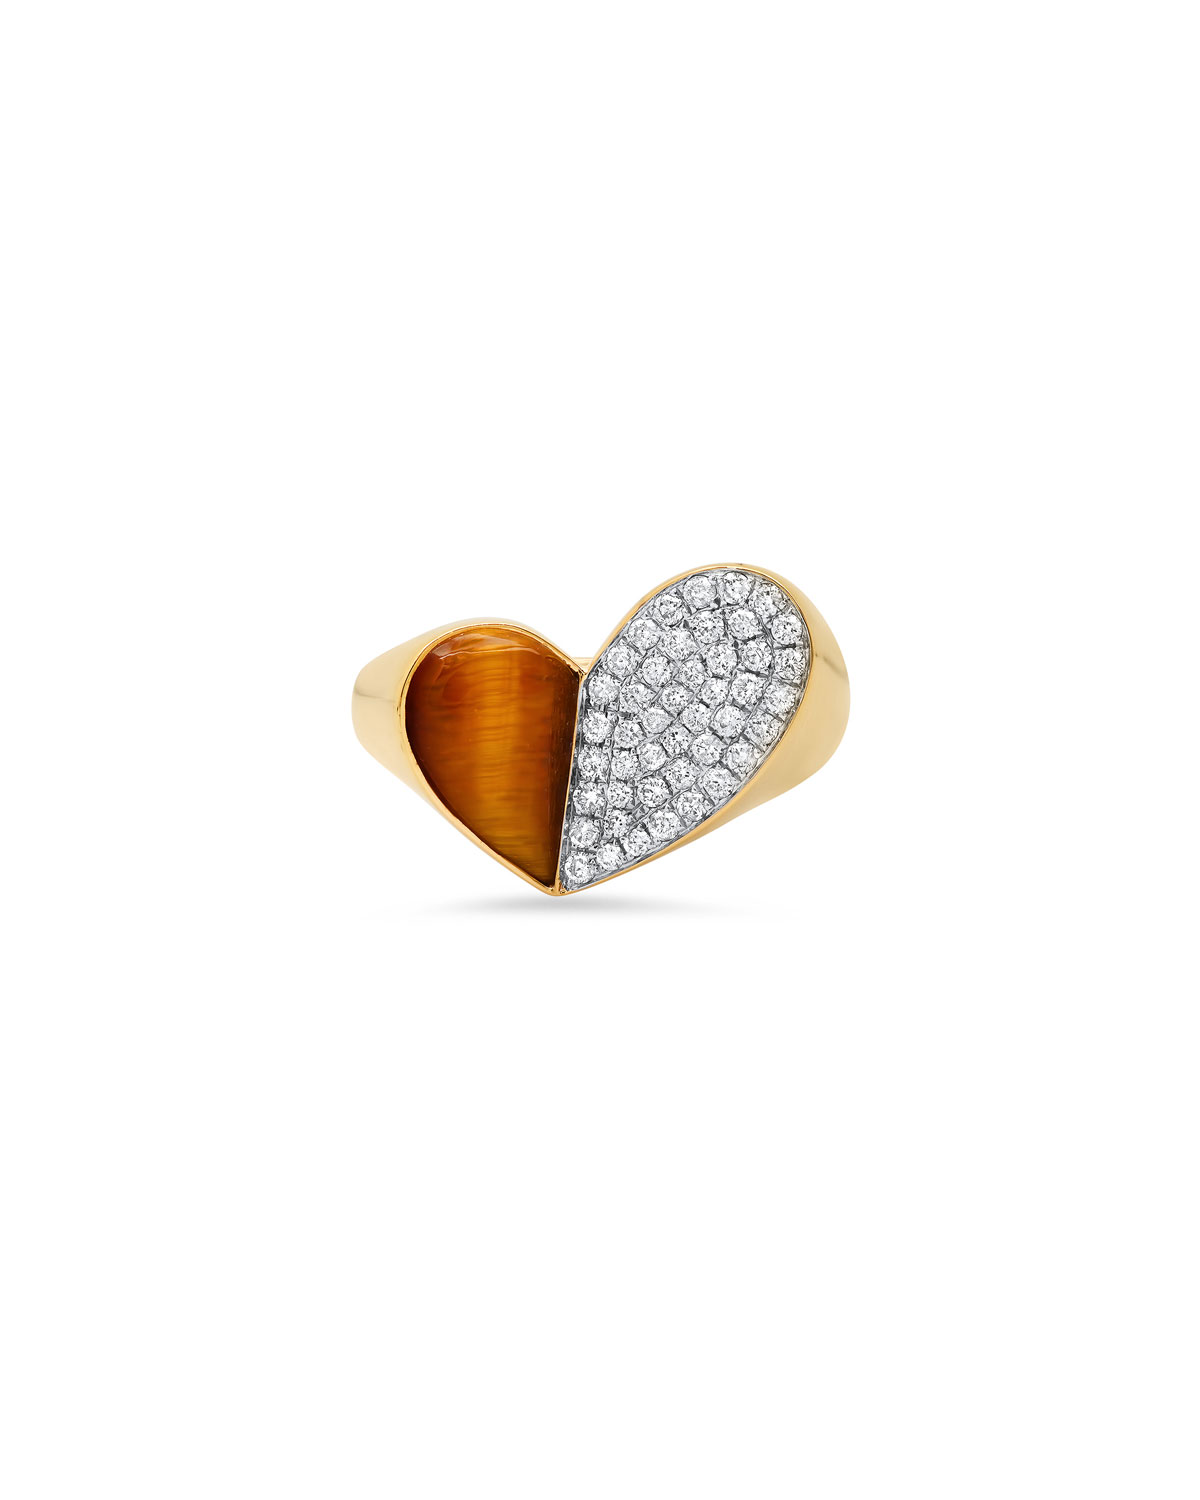 18K Yellow Gold Heart of Penacho Ring with Tiger Eye